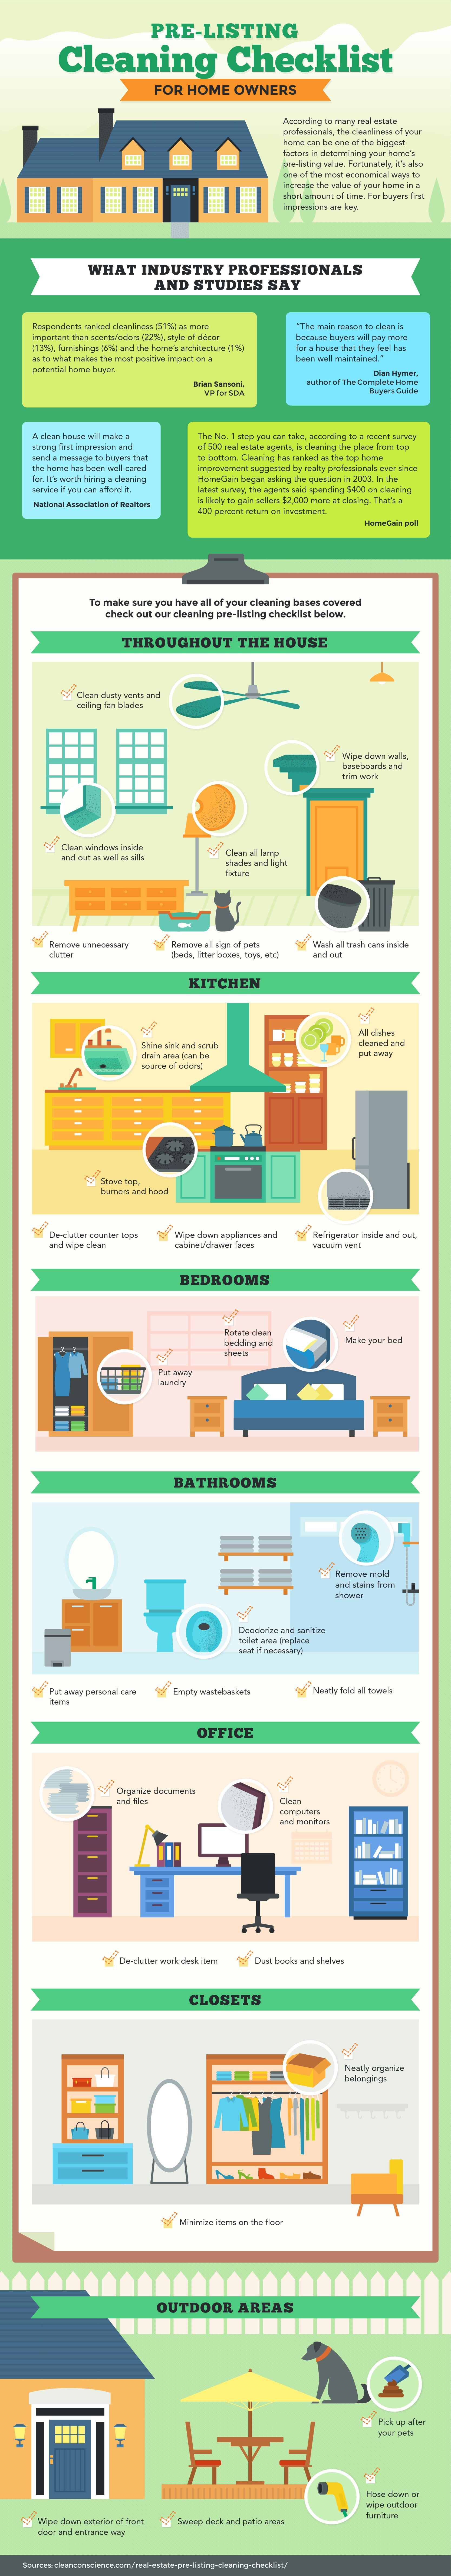 Info Graphic: Pre-Listing Cleaning Checklist